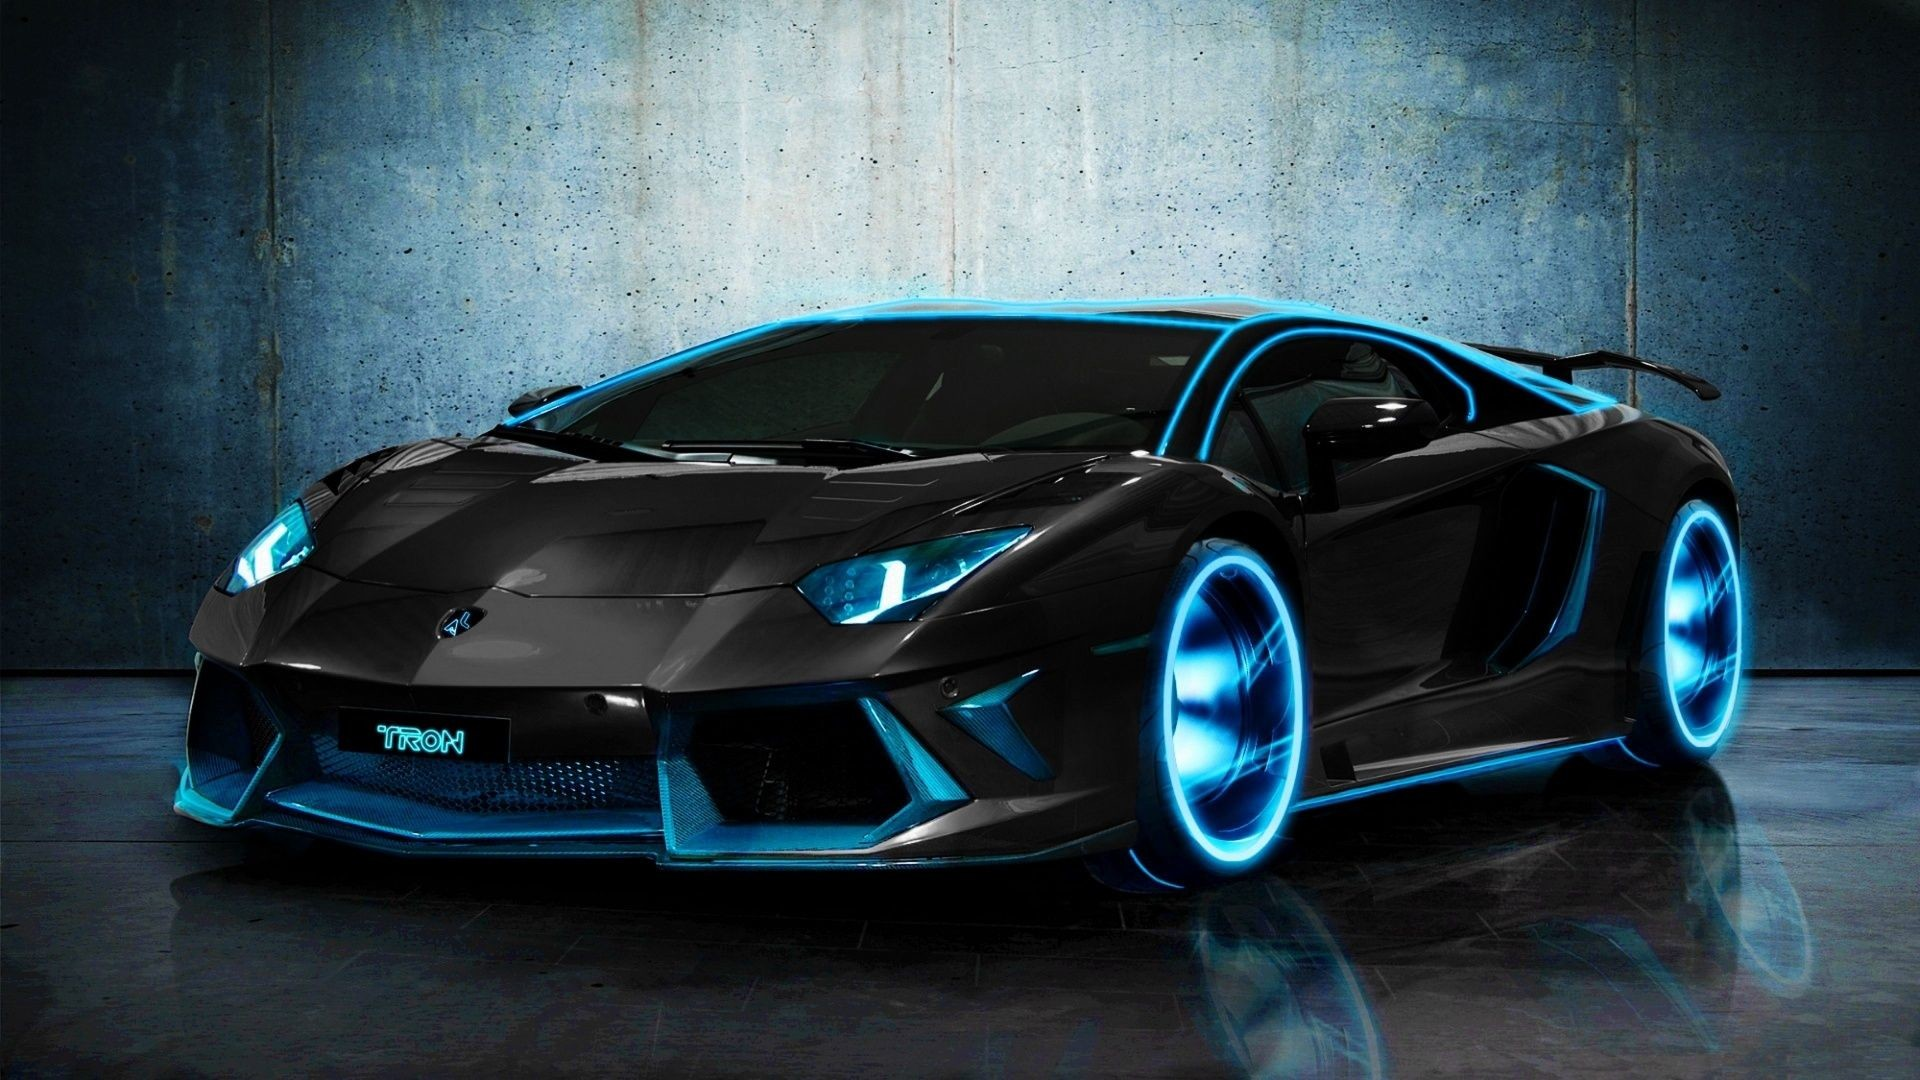 1920x1080 Wallpapers Full HD 1080p Lamborghini New 2015 - Wallpaper Cave